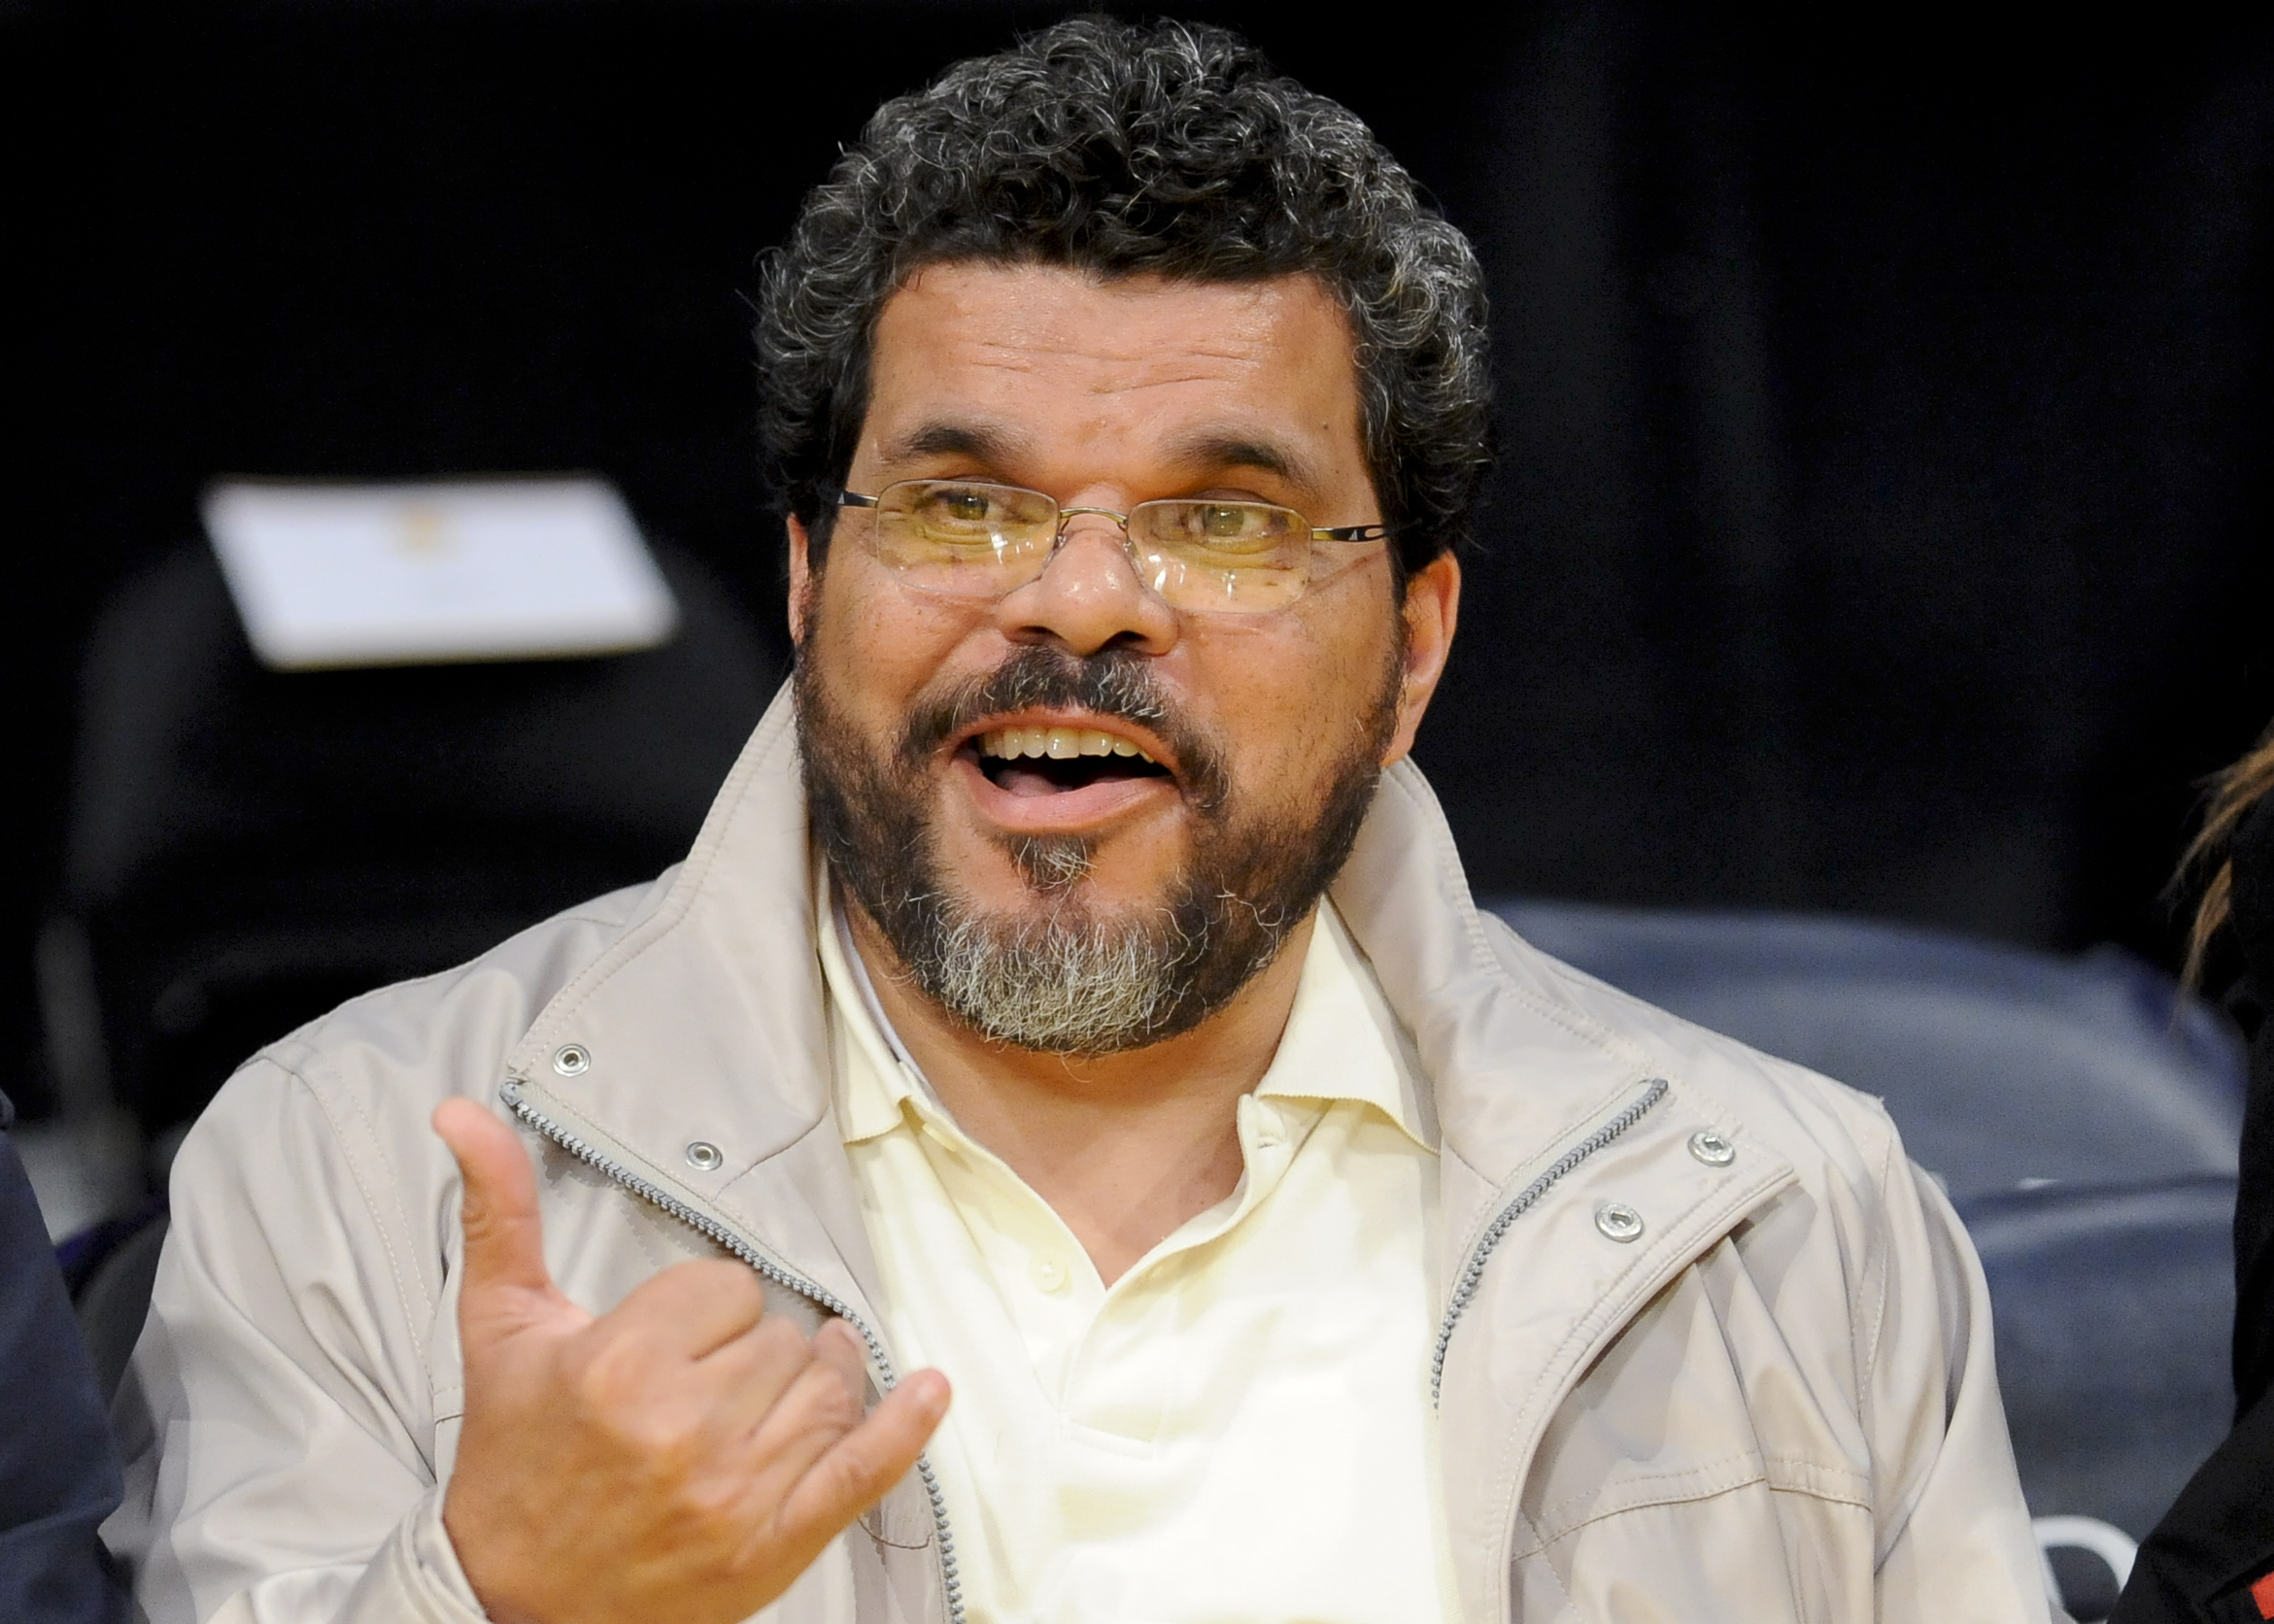 Ex-house sitter agrees to stay away from actor Luis Guzman